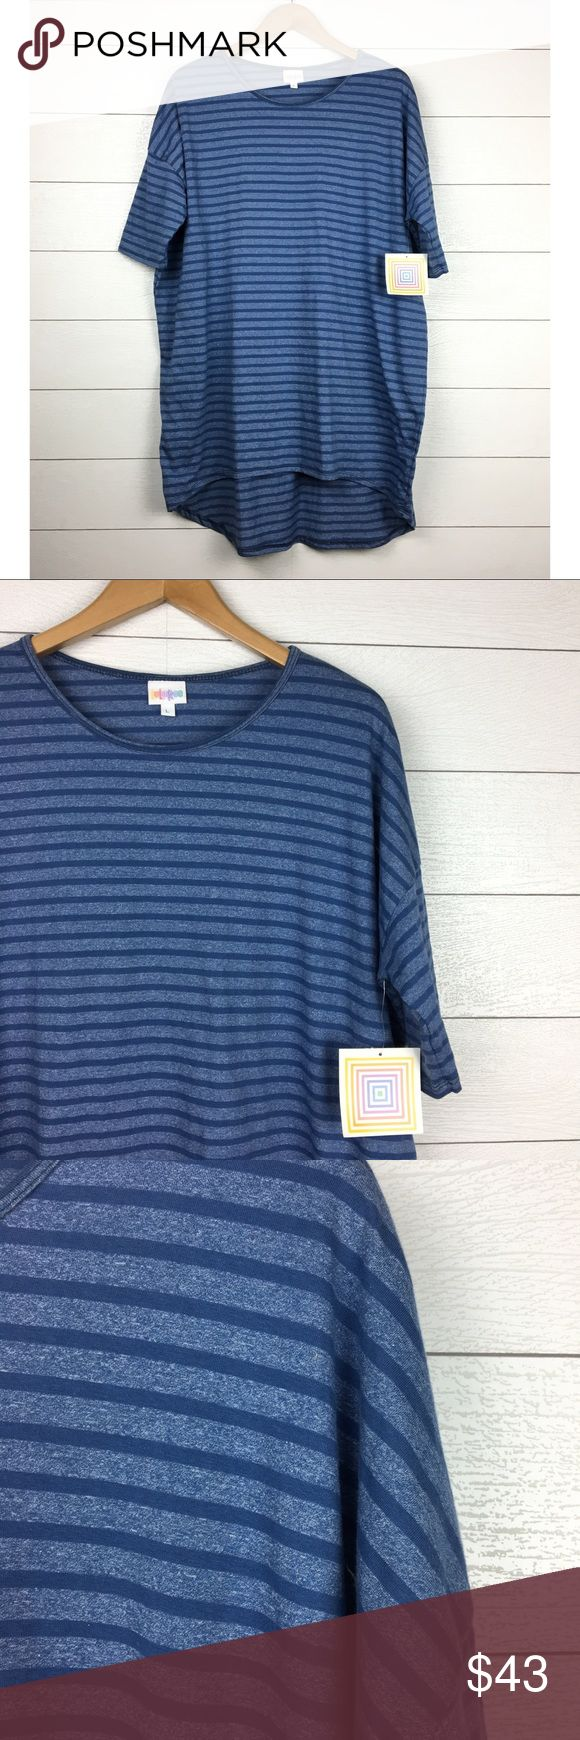 NWT LuLaRoe Irma Heathered Blue Stripe 63% cotton, 33% polyester, 4% spandex.  LuLaRoe Irma Tee.  Heathered blue stripes.  Short sleeve.  High/low hemline.  Round neckline.  Loose, oversized fit.  Size large will best fit sizes 16-18 based on online chart.  Brand new, with tags attached. LuLaRoe Tops Tees - Short Sleeve